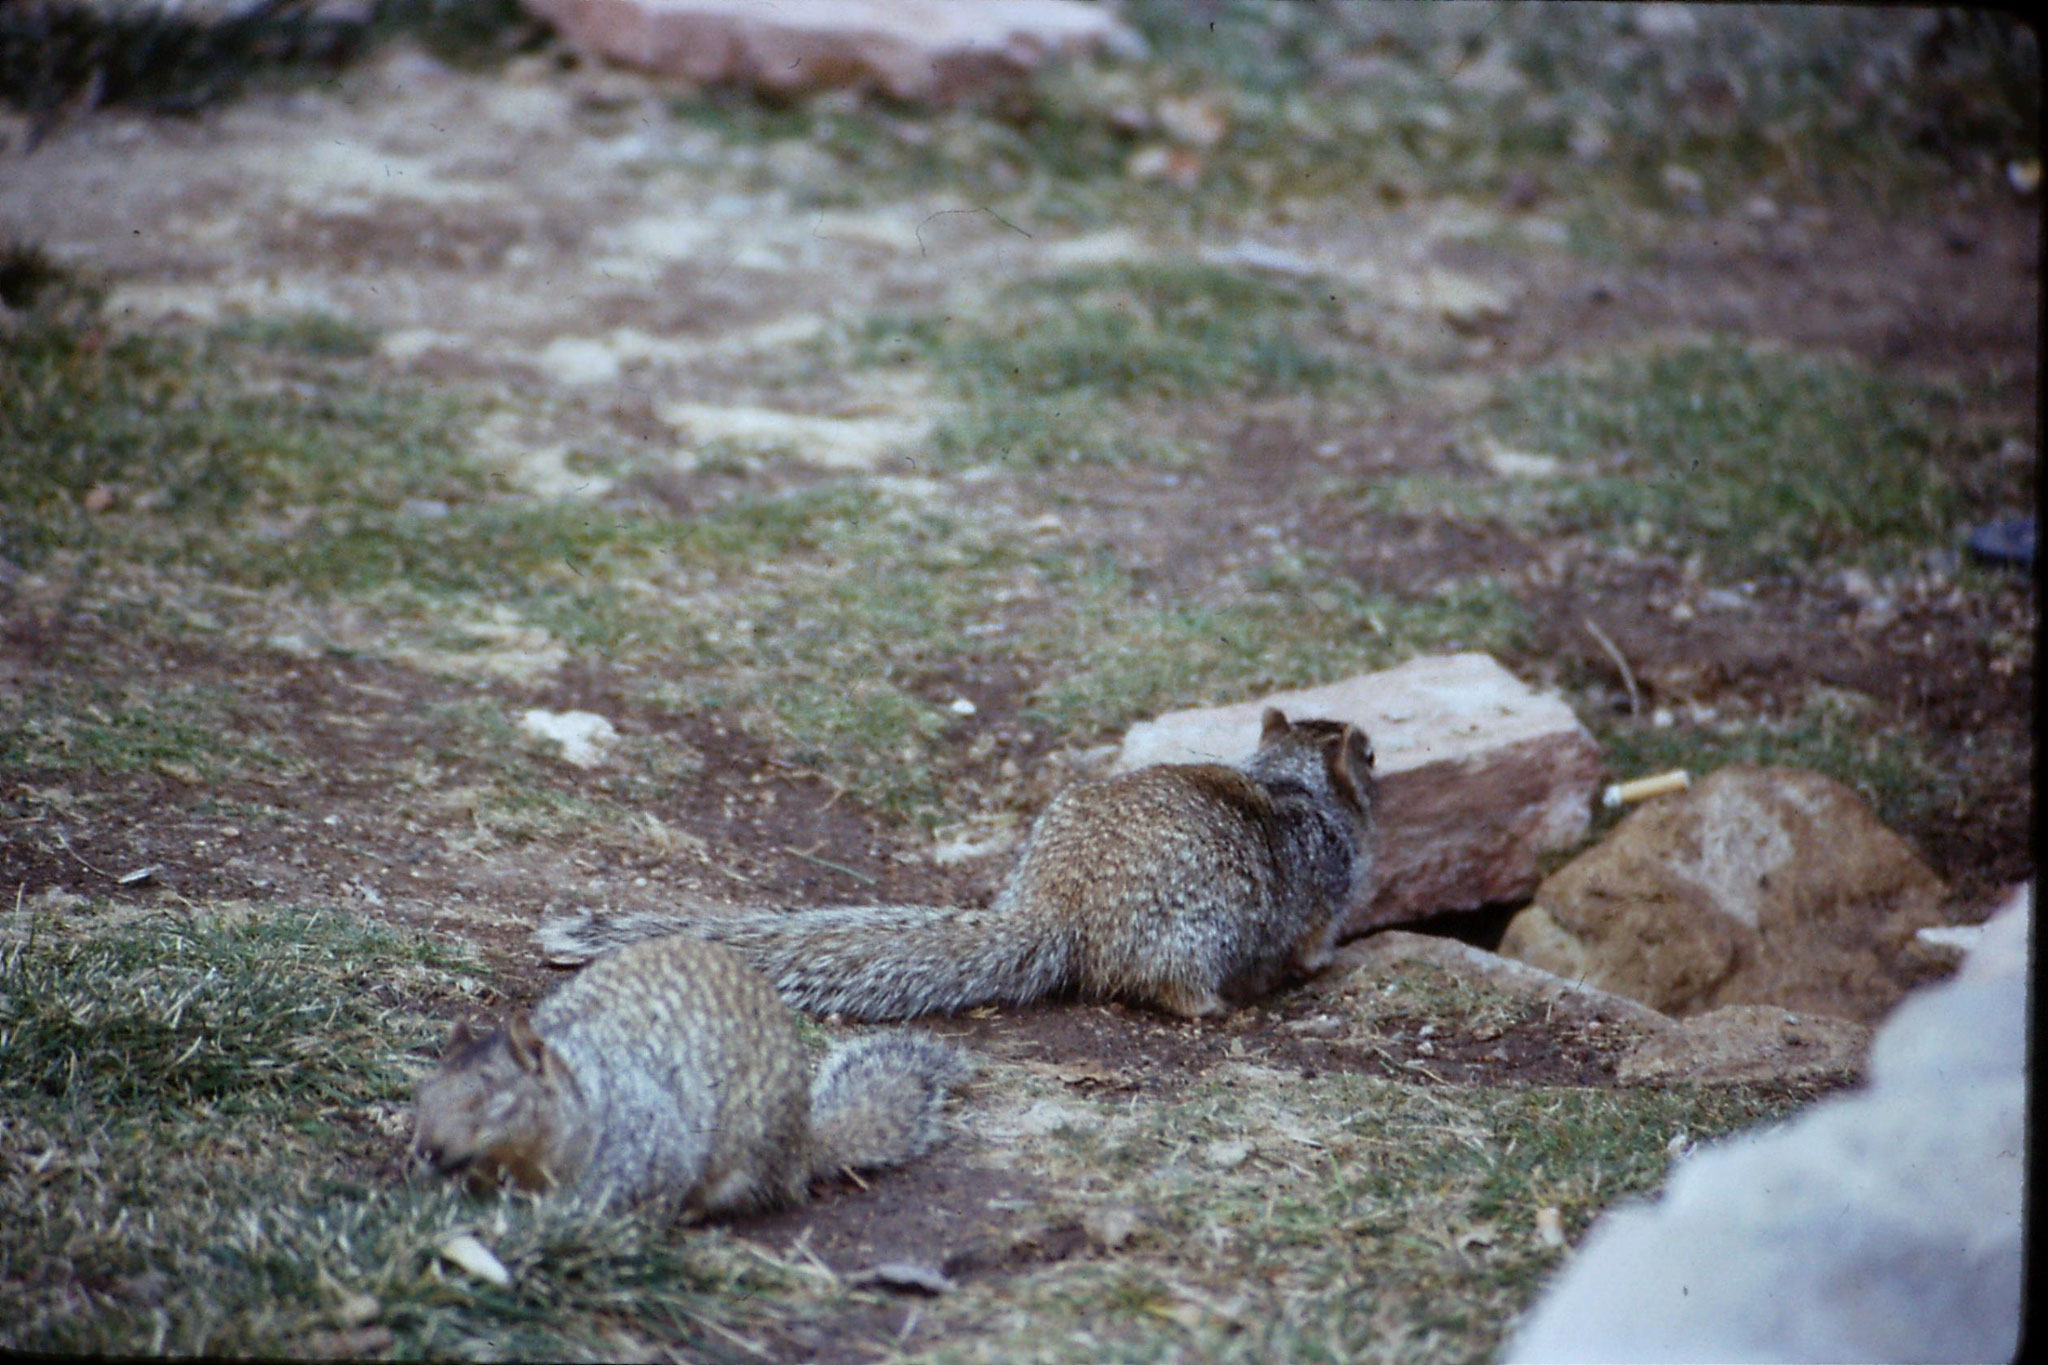 17/12/1990: 1: Abert Squirrels